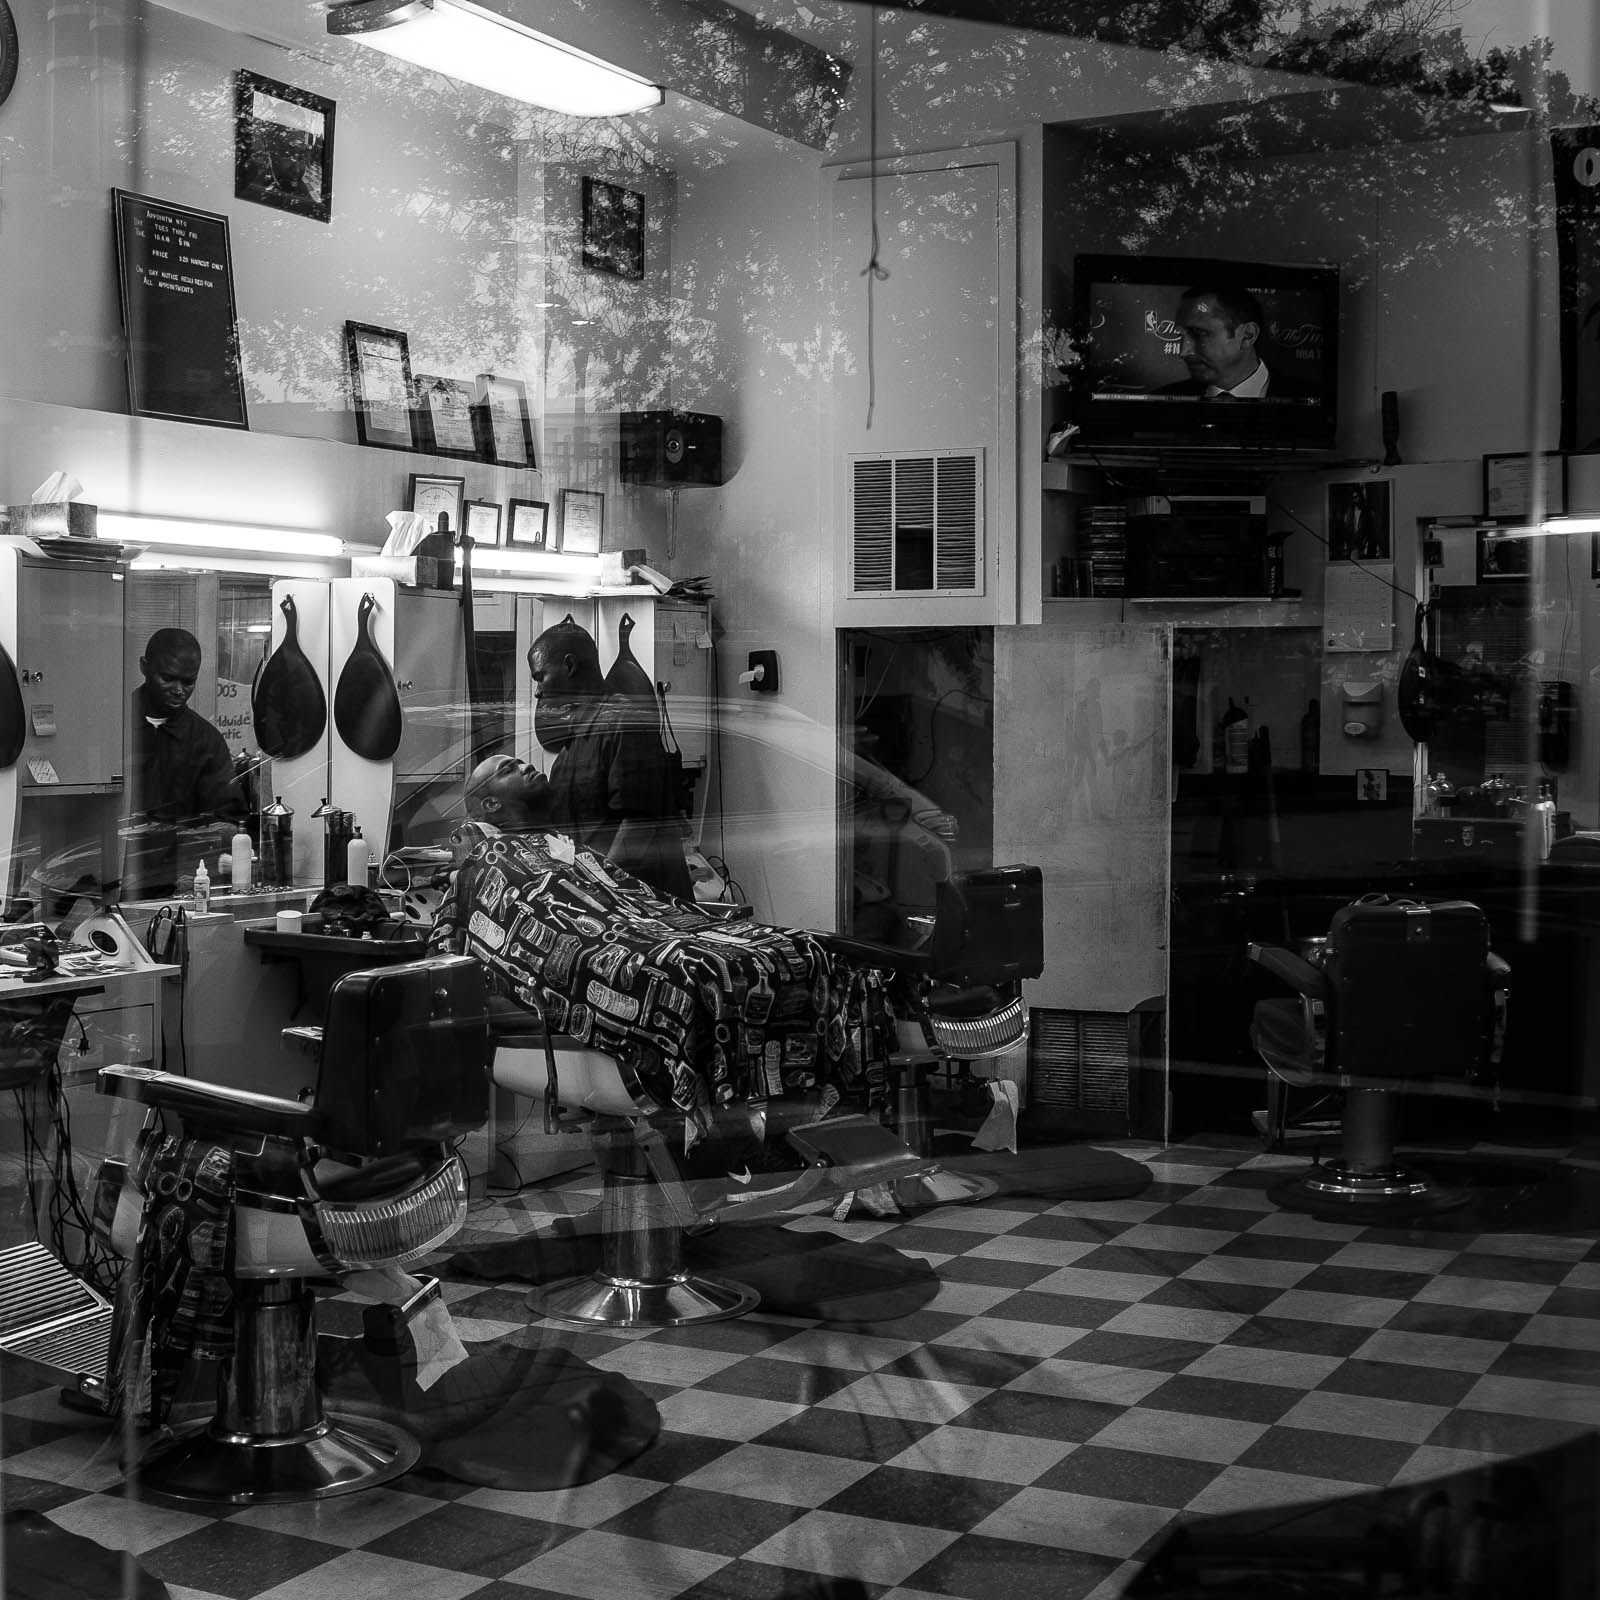 Reflections on a Haircut by Andrew Golda